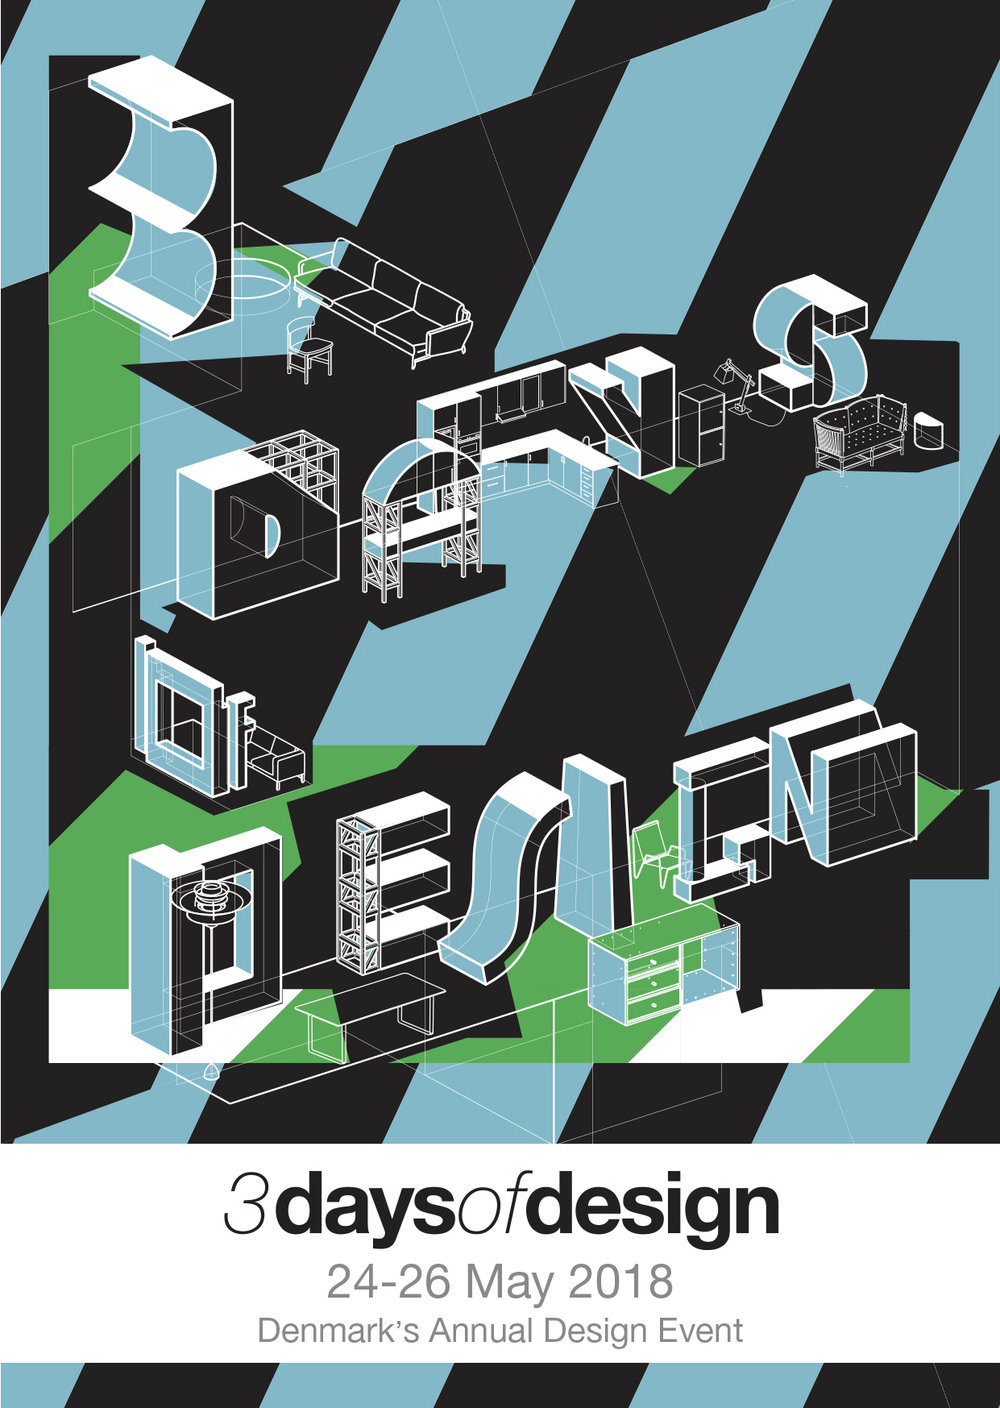 24-26 MAY 2018  JOIN KJÆR ARCHITECTURE AT 3 DAYS OF DESIGN